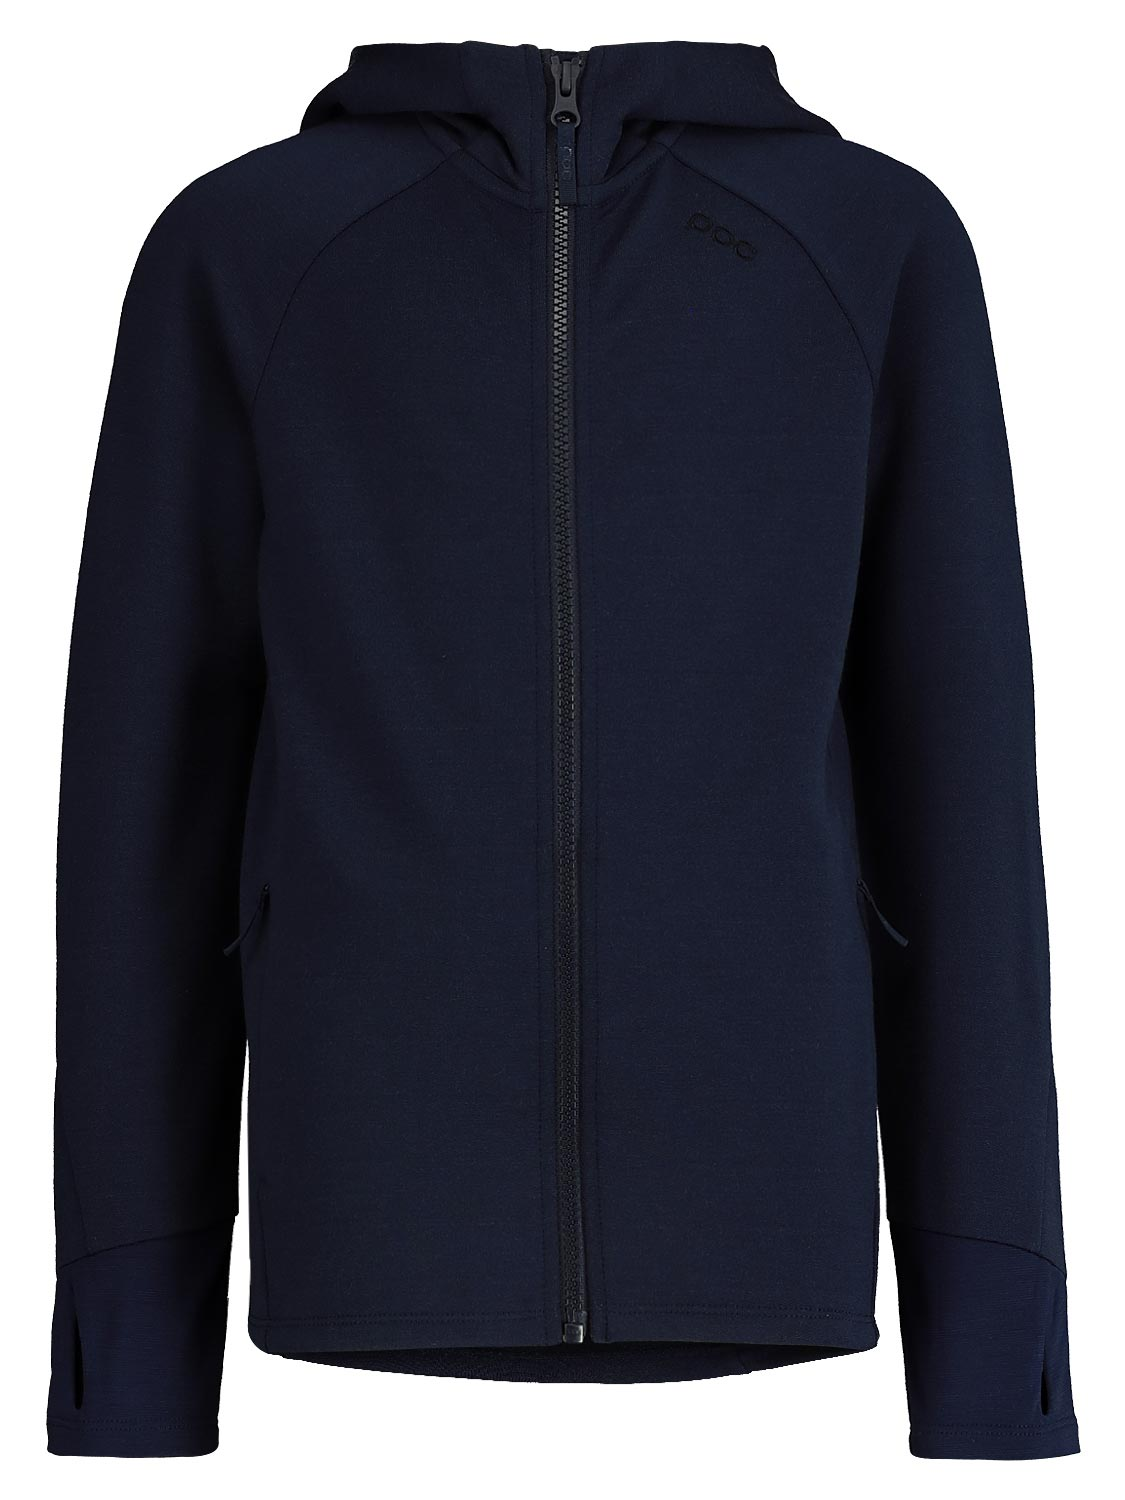 Poc Kids Jacket For For Boys And For Girls In Blau